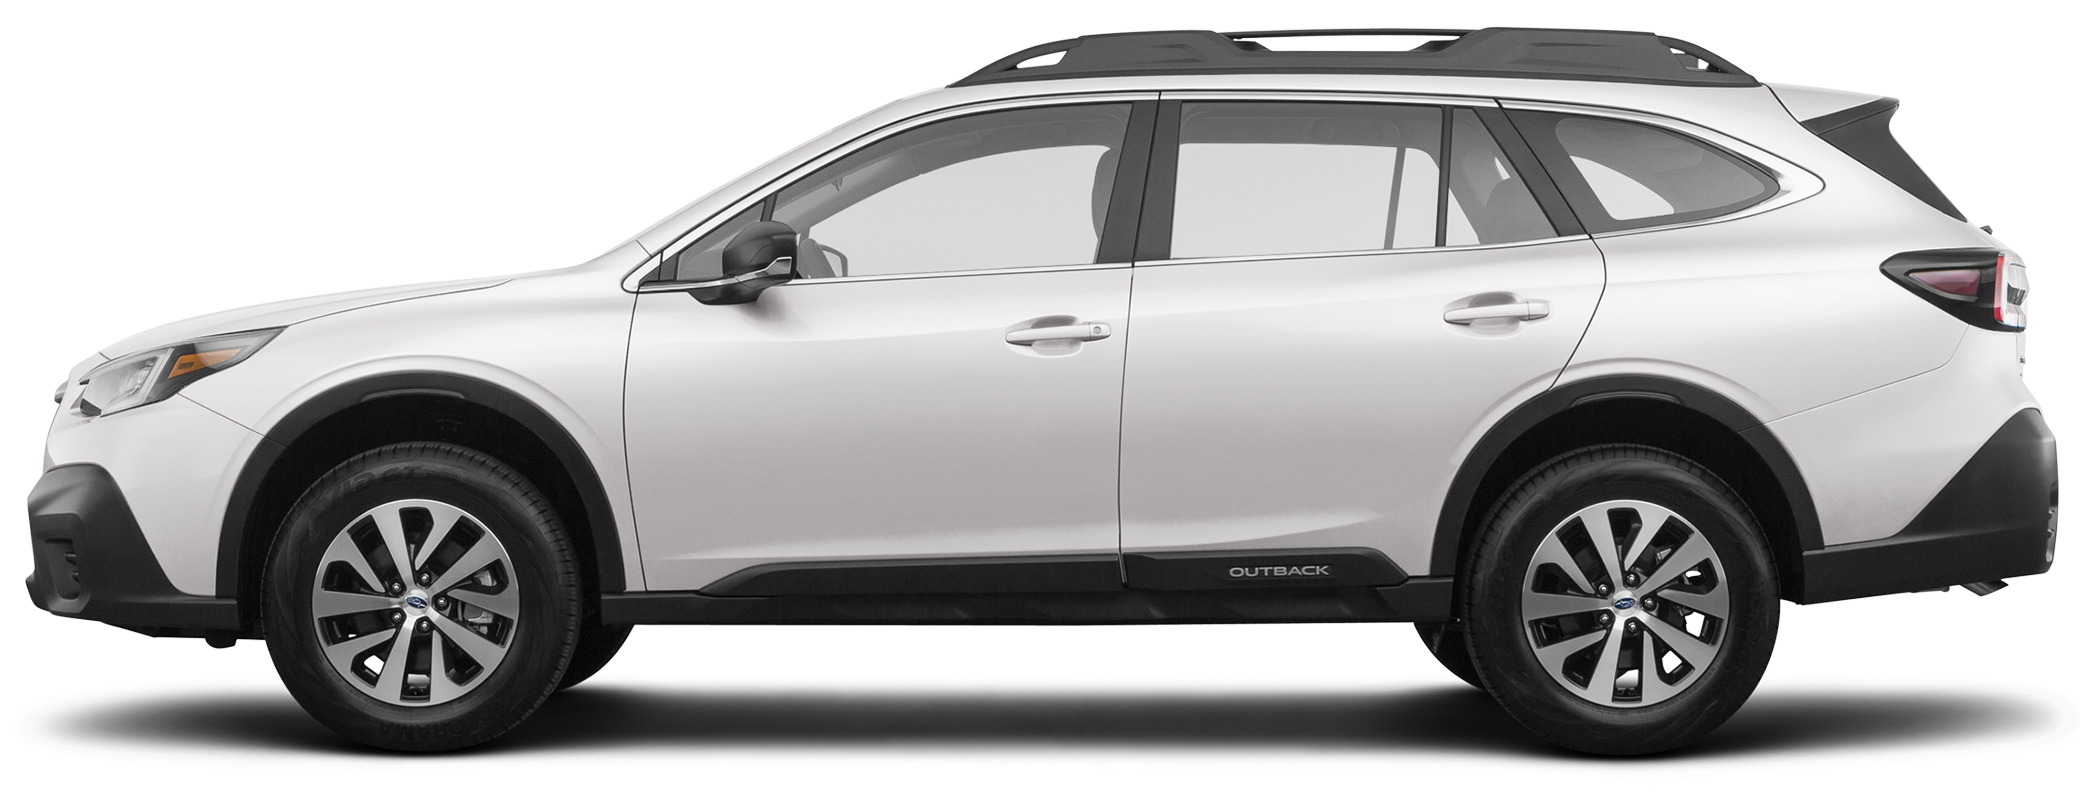 2020 Subaru Outback SUV Base Model